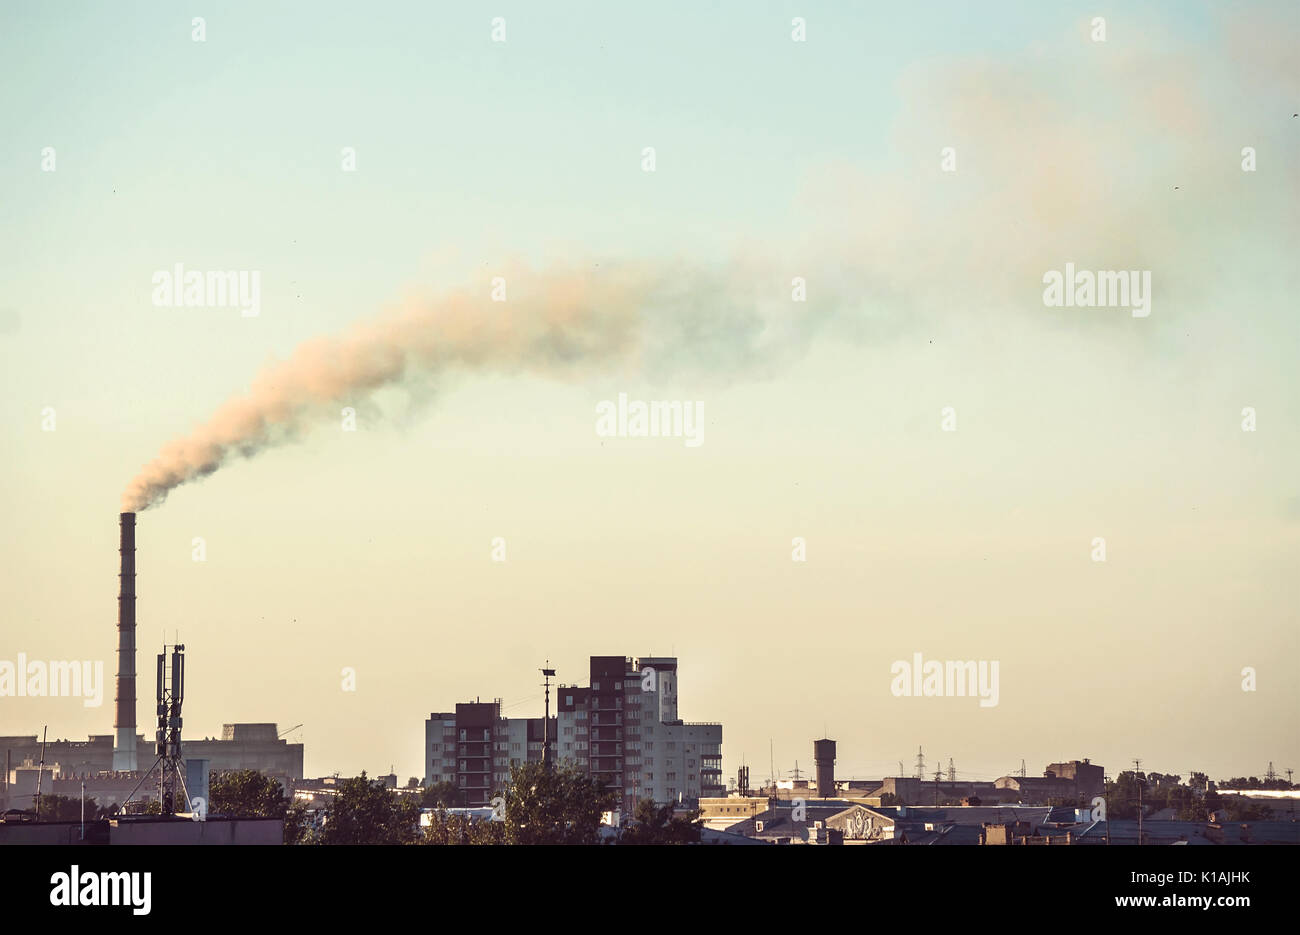 Smoke from factory pipes. Air pollution industry - Stock Image